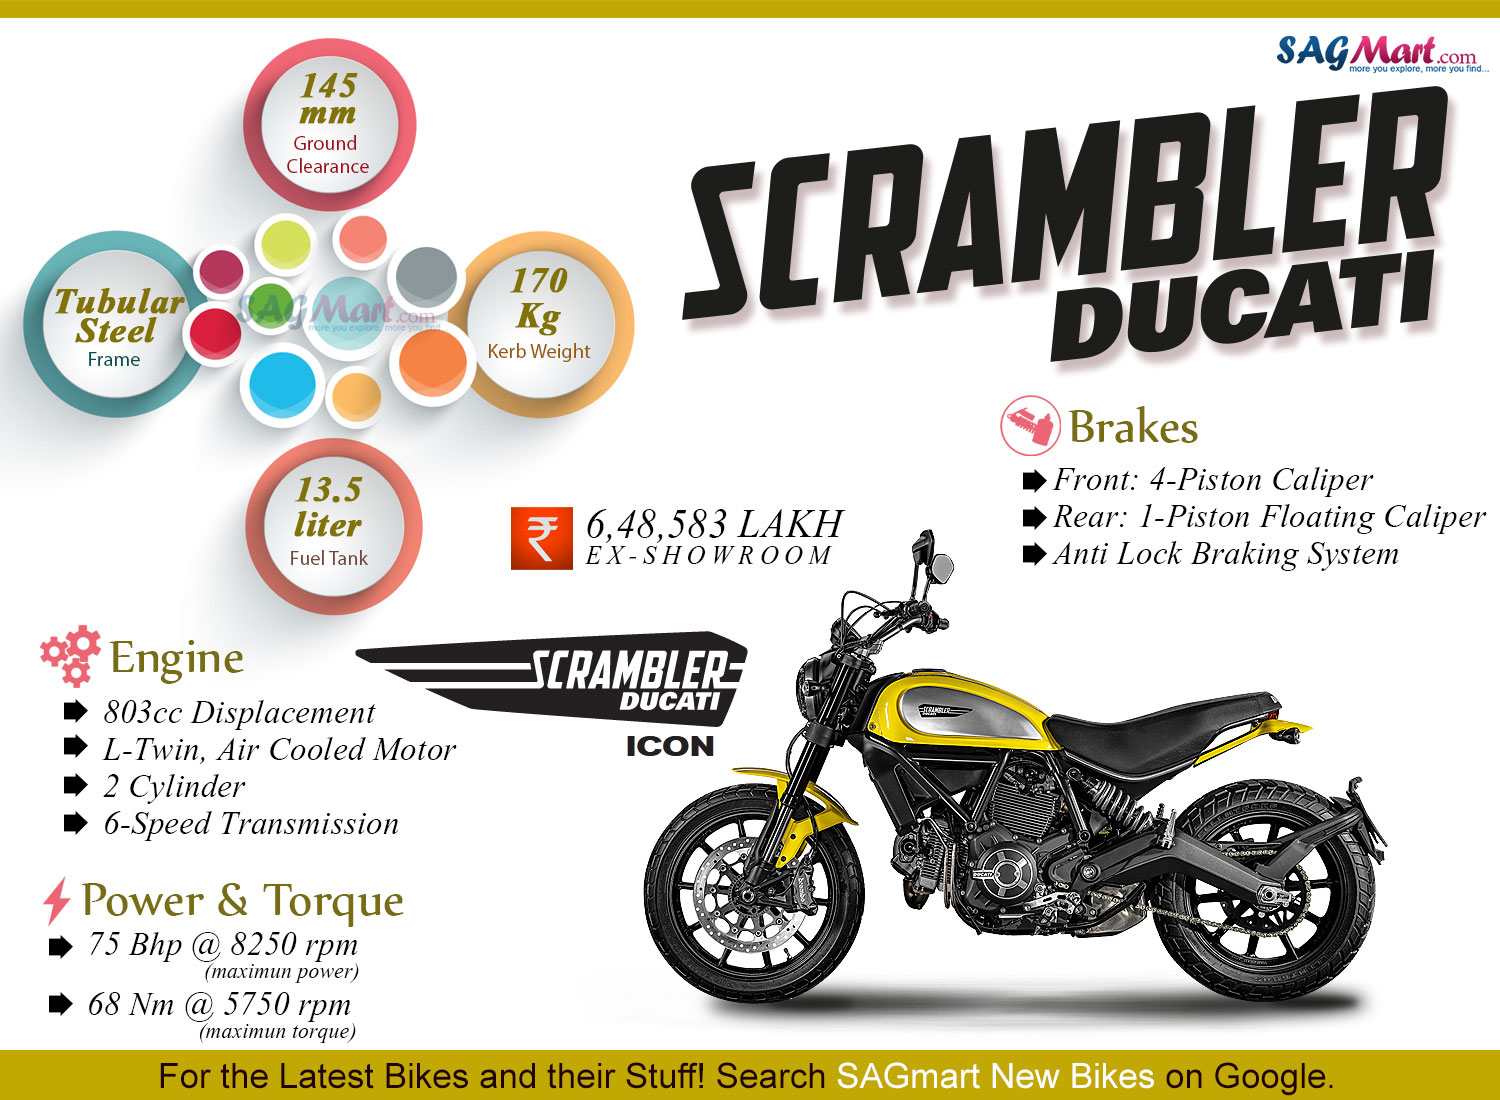 Terrific Ducati Scrambler Icon Yellow 2016 Infographic Sagmart Machost Co Dining Chair Design Ideas Machostcouk